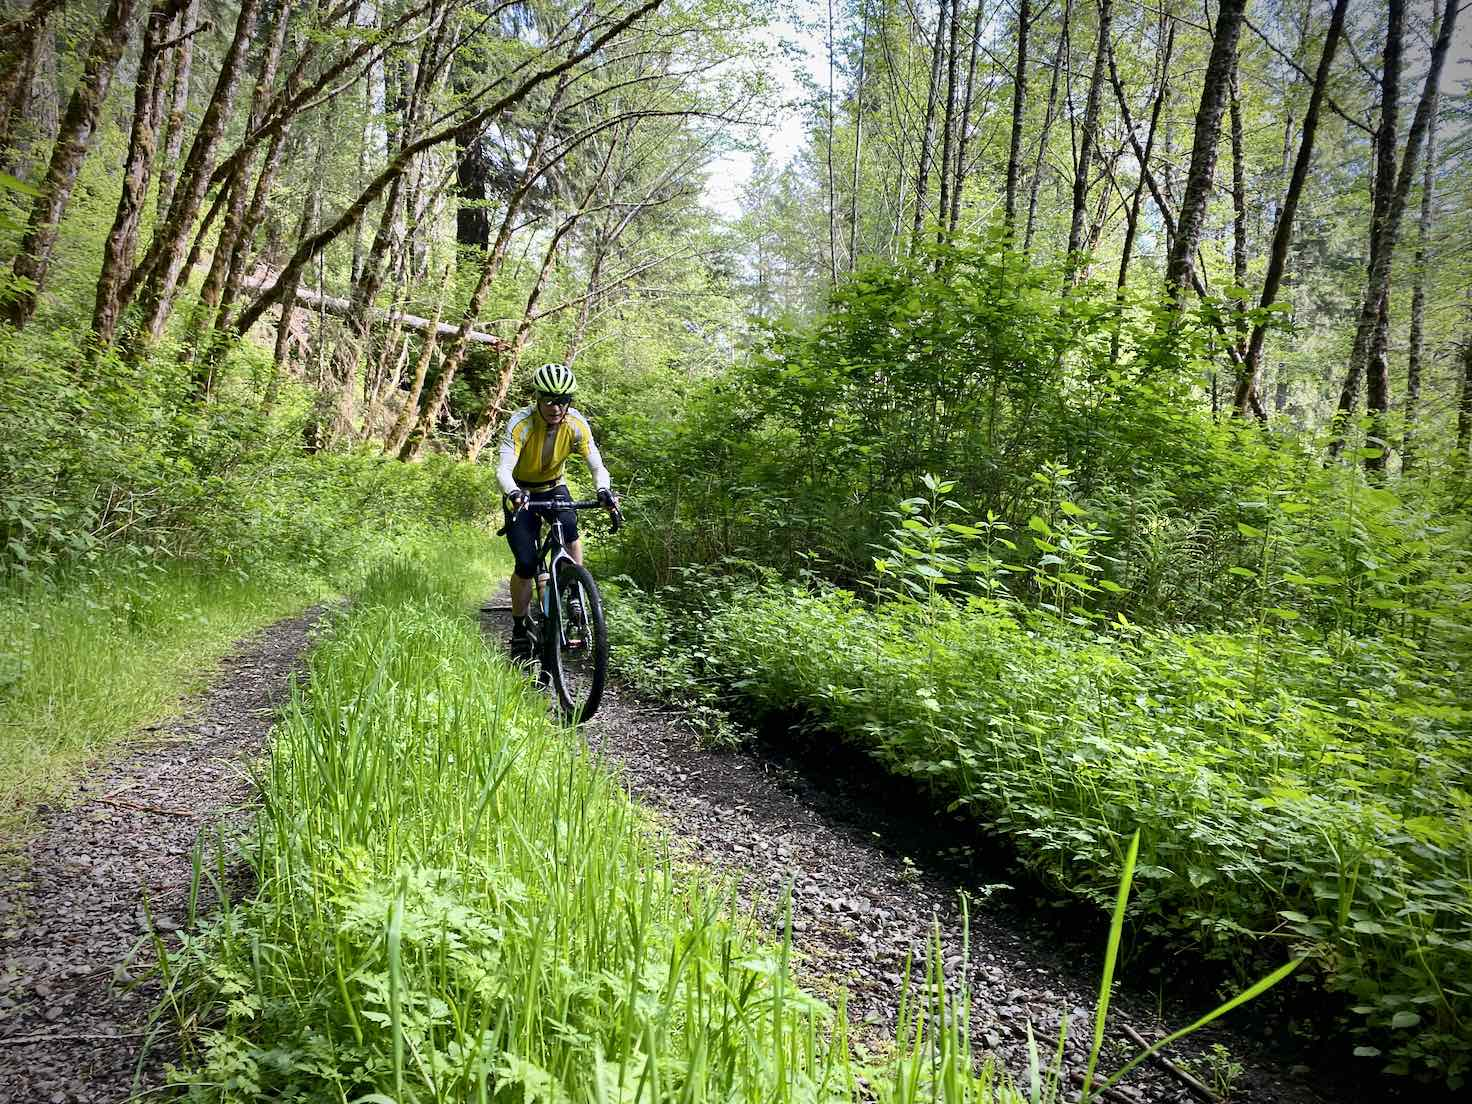 Gravel cyclists on primitive road in the Siuslaw forest.